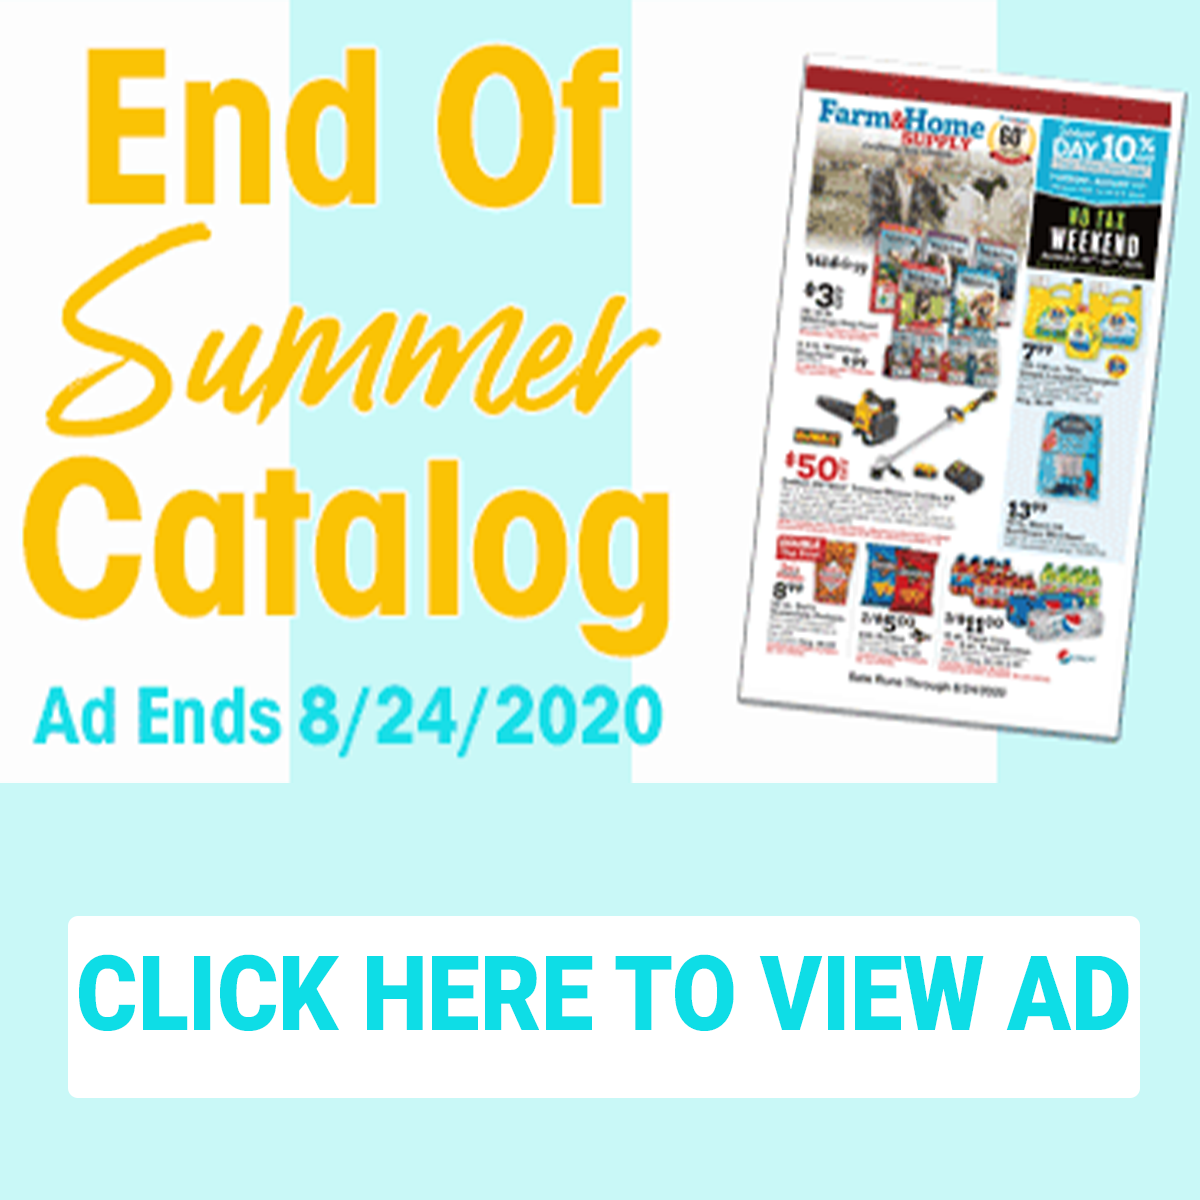 End of Summer Catalog